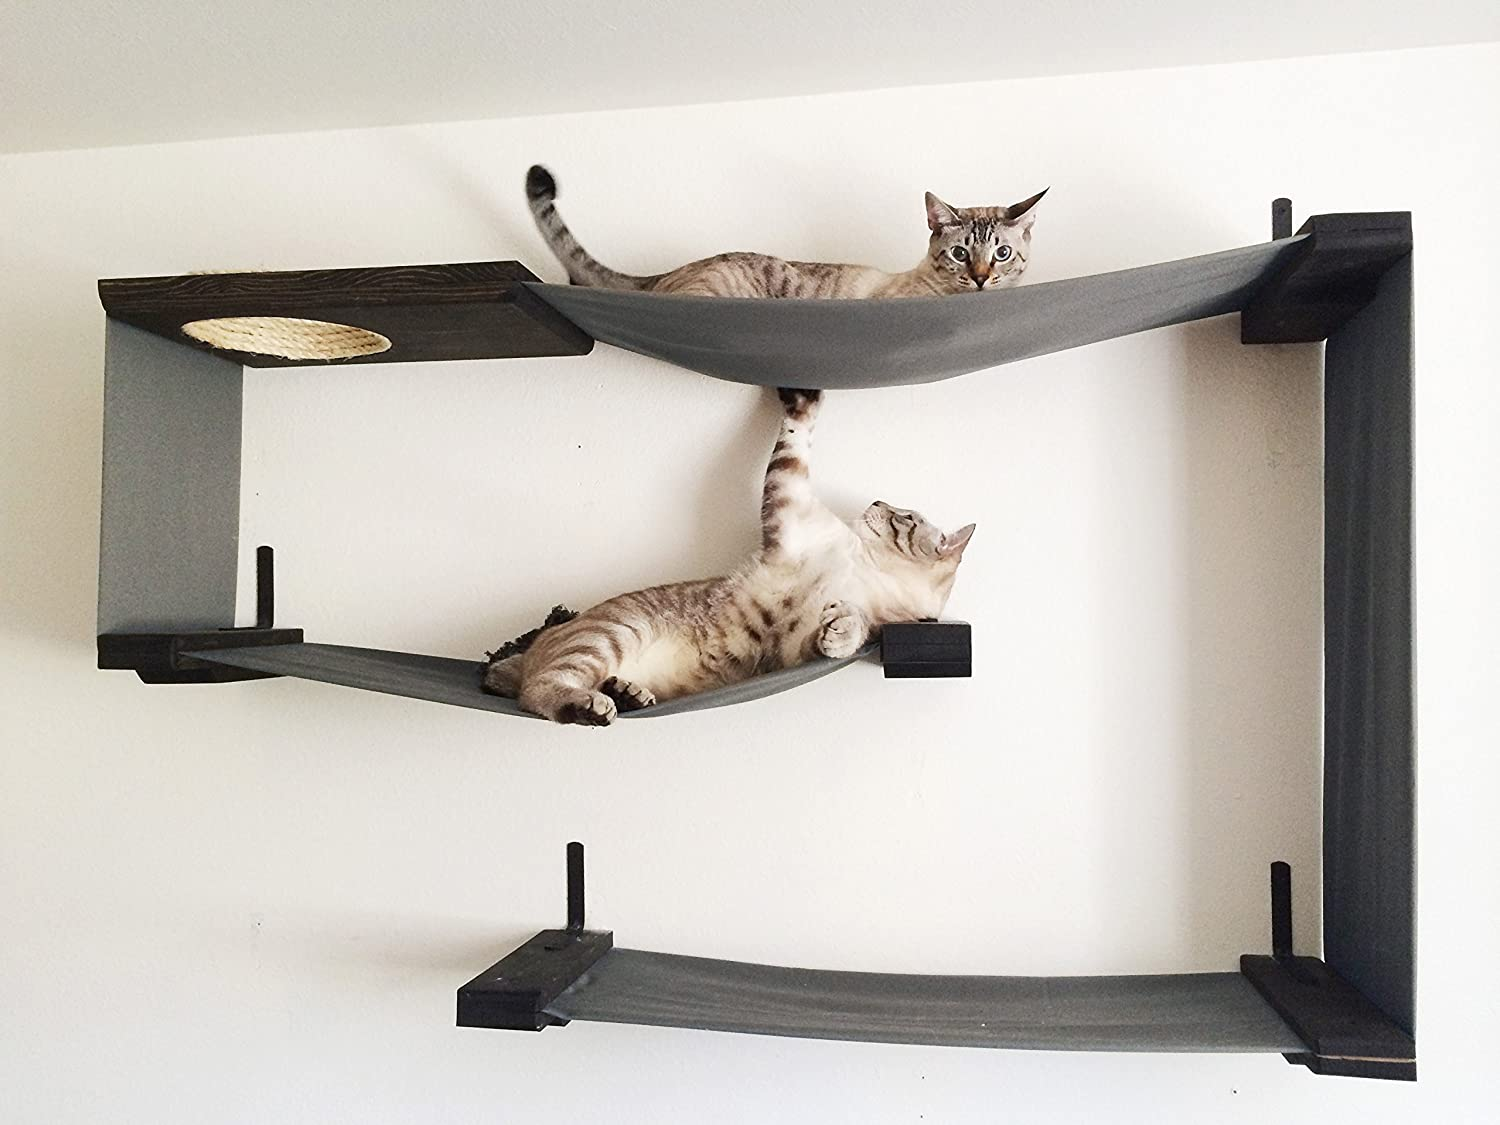 Top 10 Cat Shelves and Wall Perches | How to Spoil Your Feline Friend!